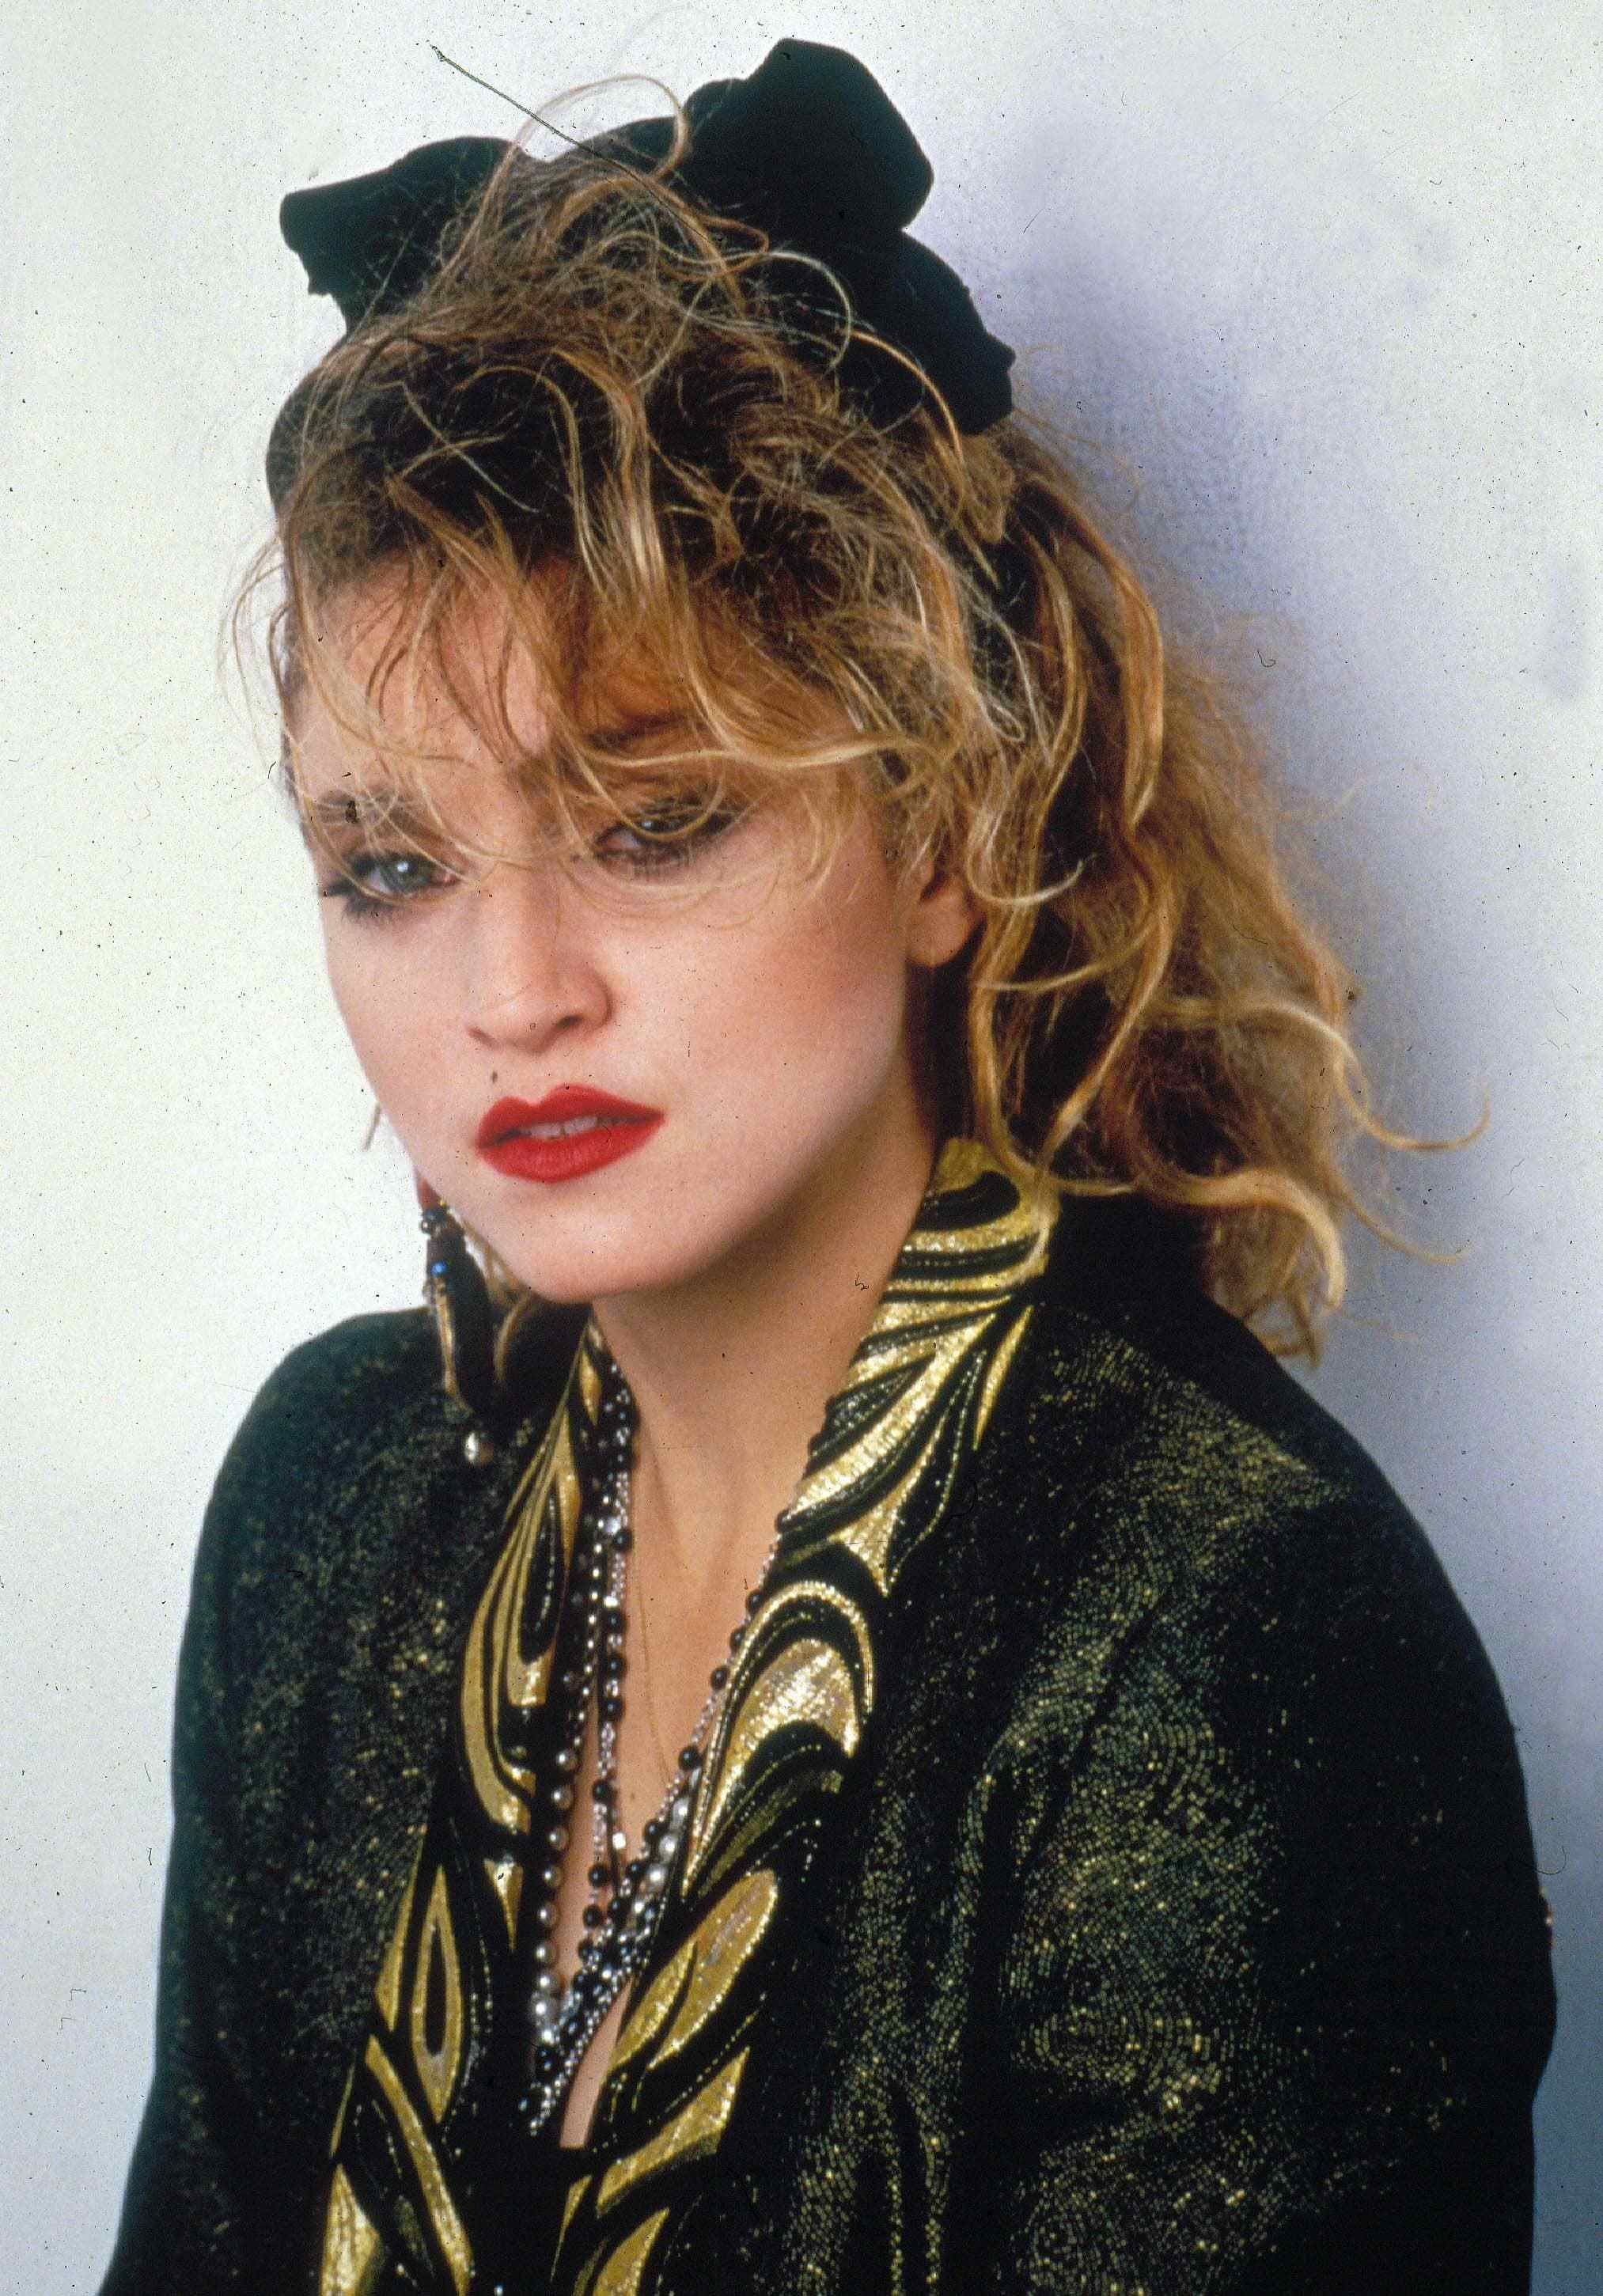 The Best 23 Epic 1980S Hairstyles Making A Huge Come Back All Pictures